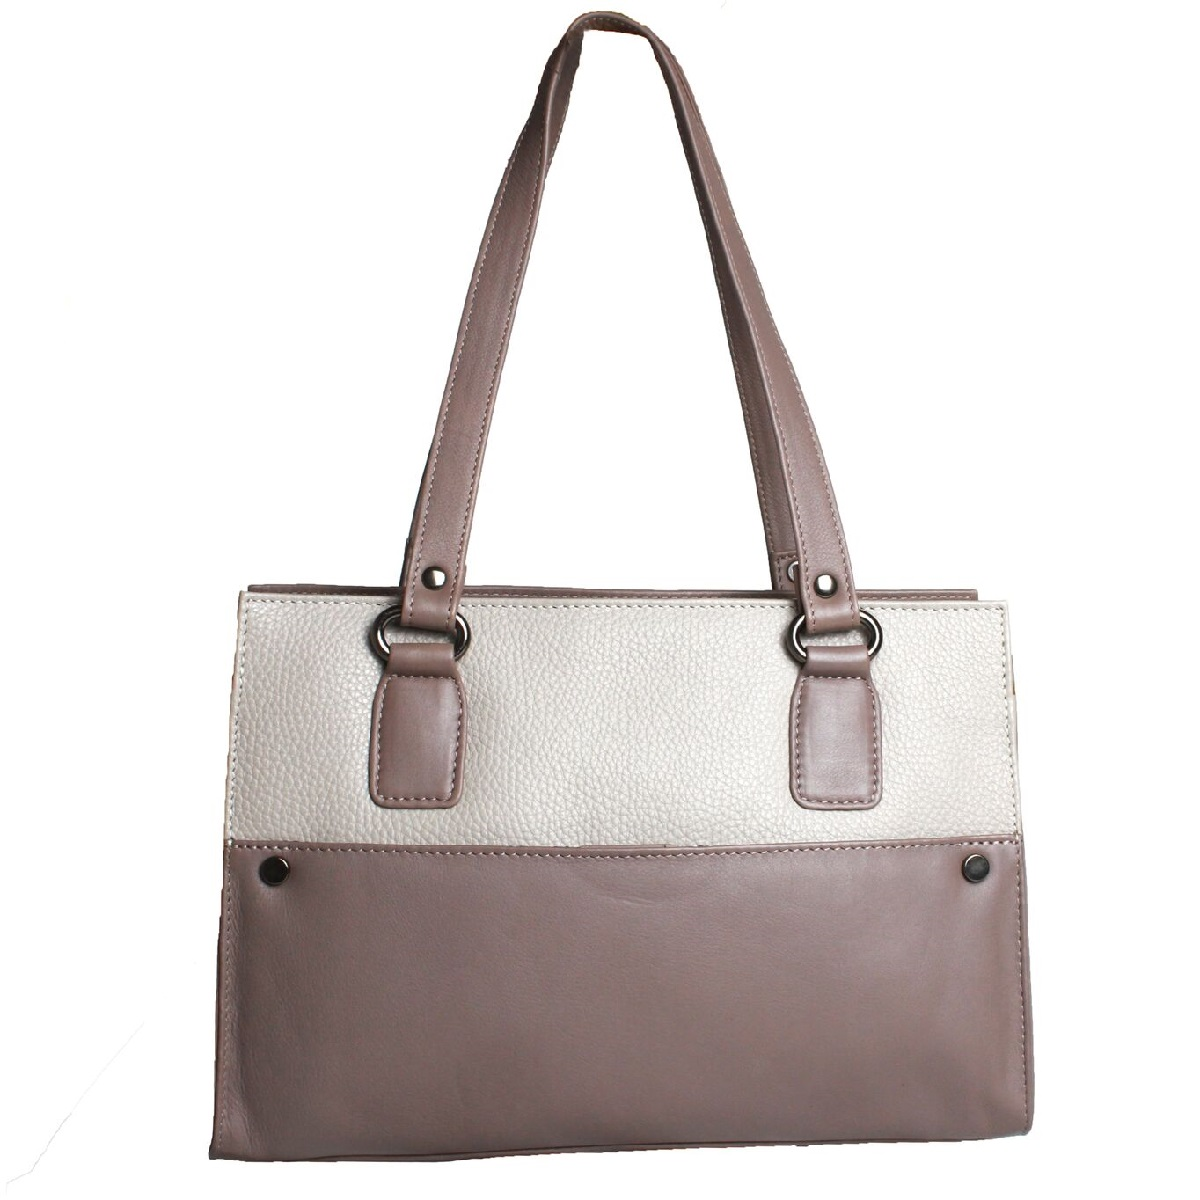 Eastern Counties Leather Womens/Ladies Joy Double Strap Handbag (One size) (Taupe/Stone)